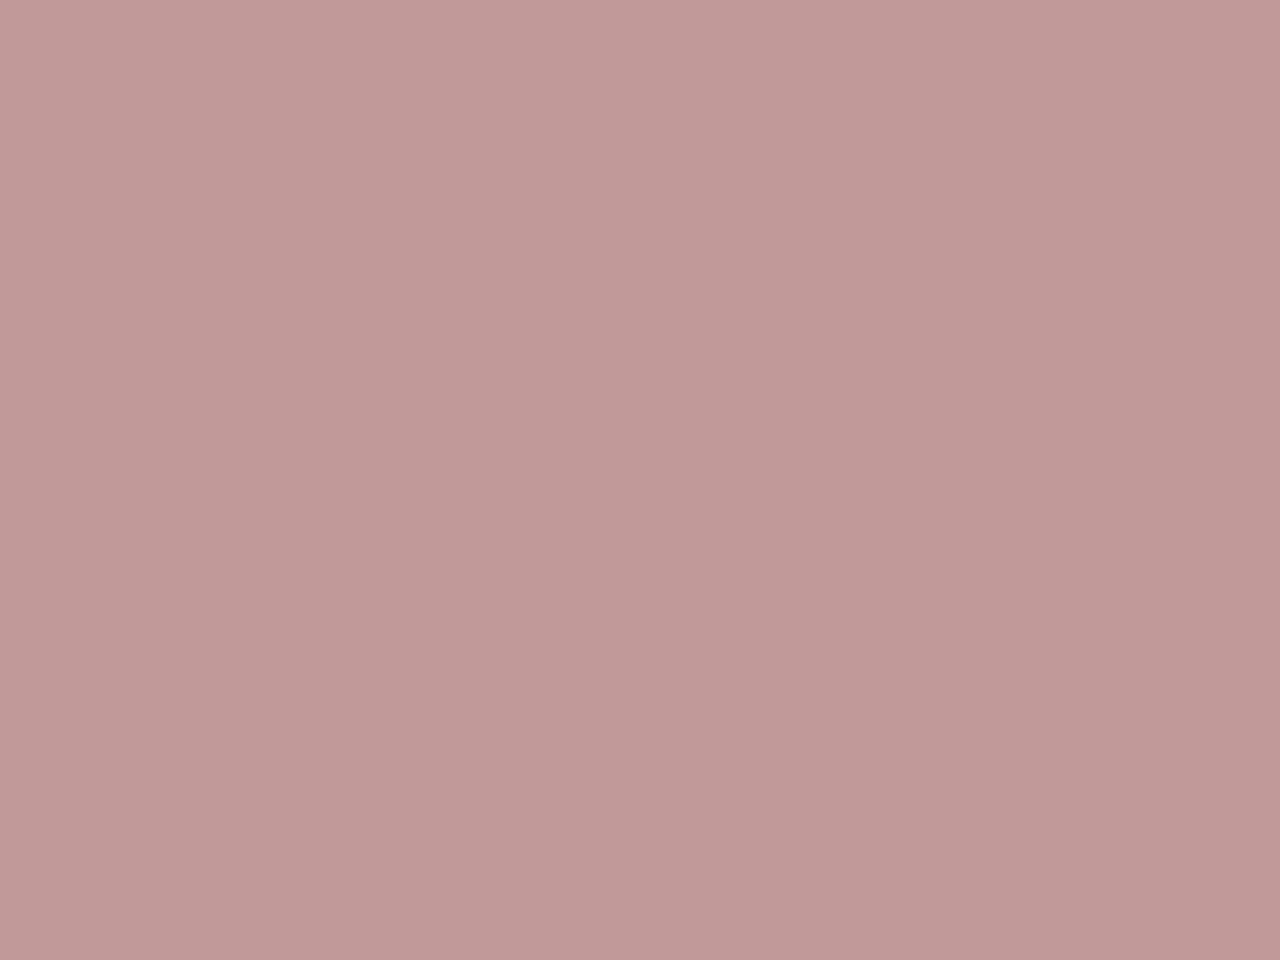 1280x960 Tuscany Solid Color Background